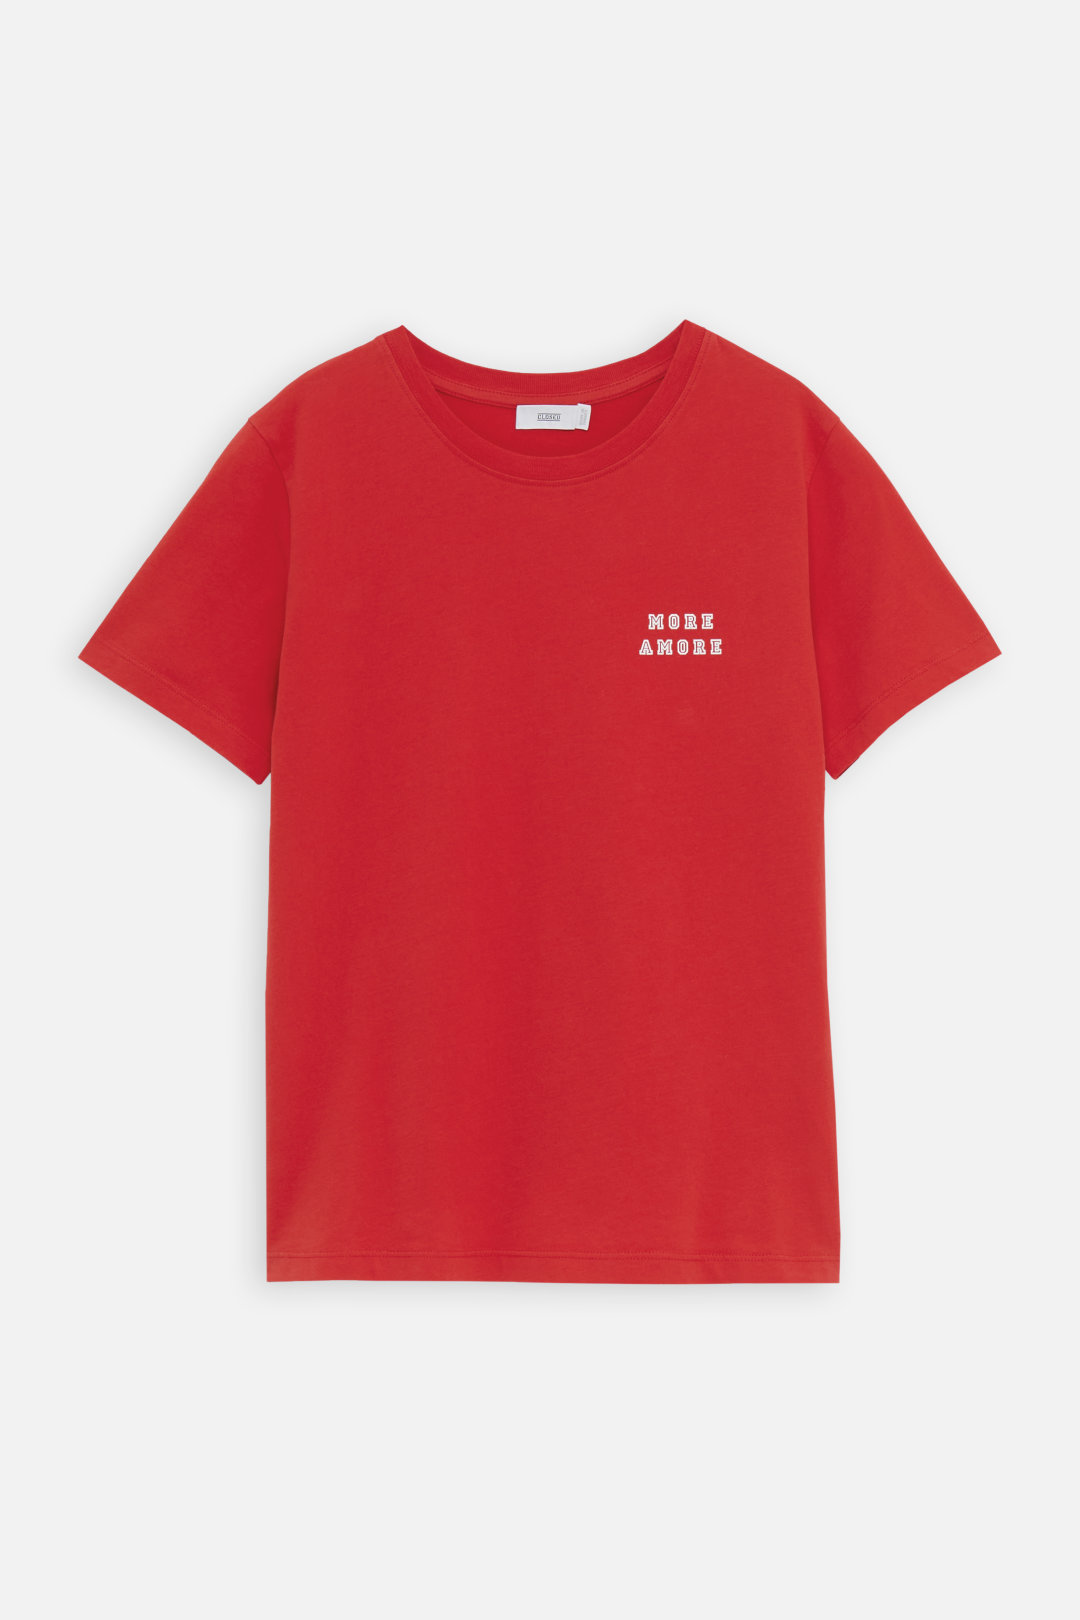 T-Shirt More Amore